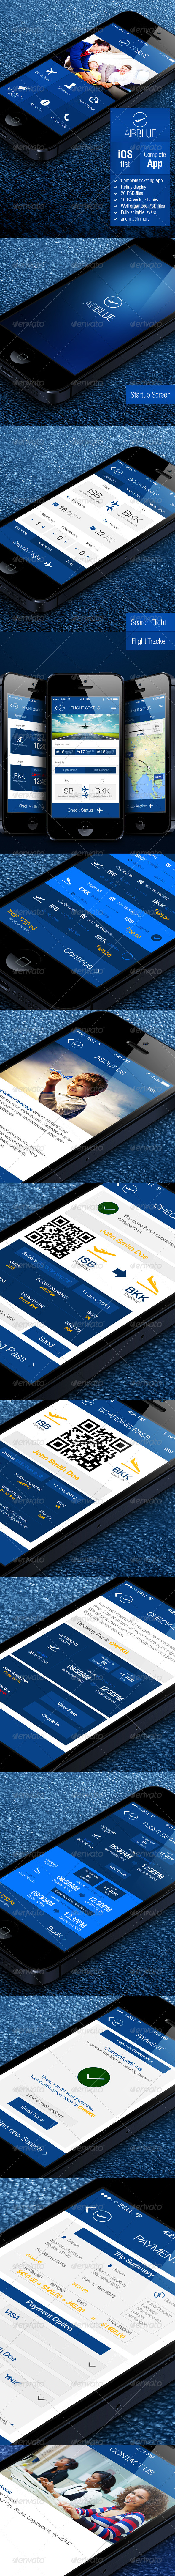 GraphicRiver AirBlue Flight Ticket Booking App 5402500